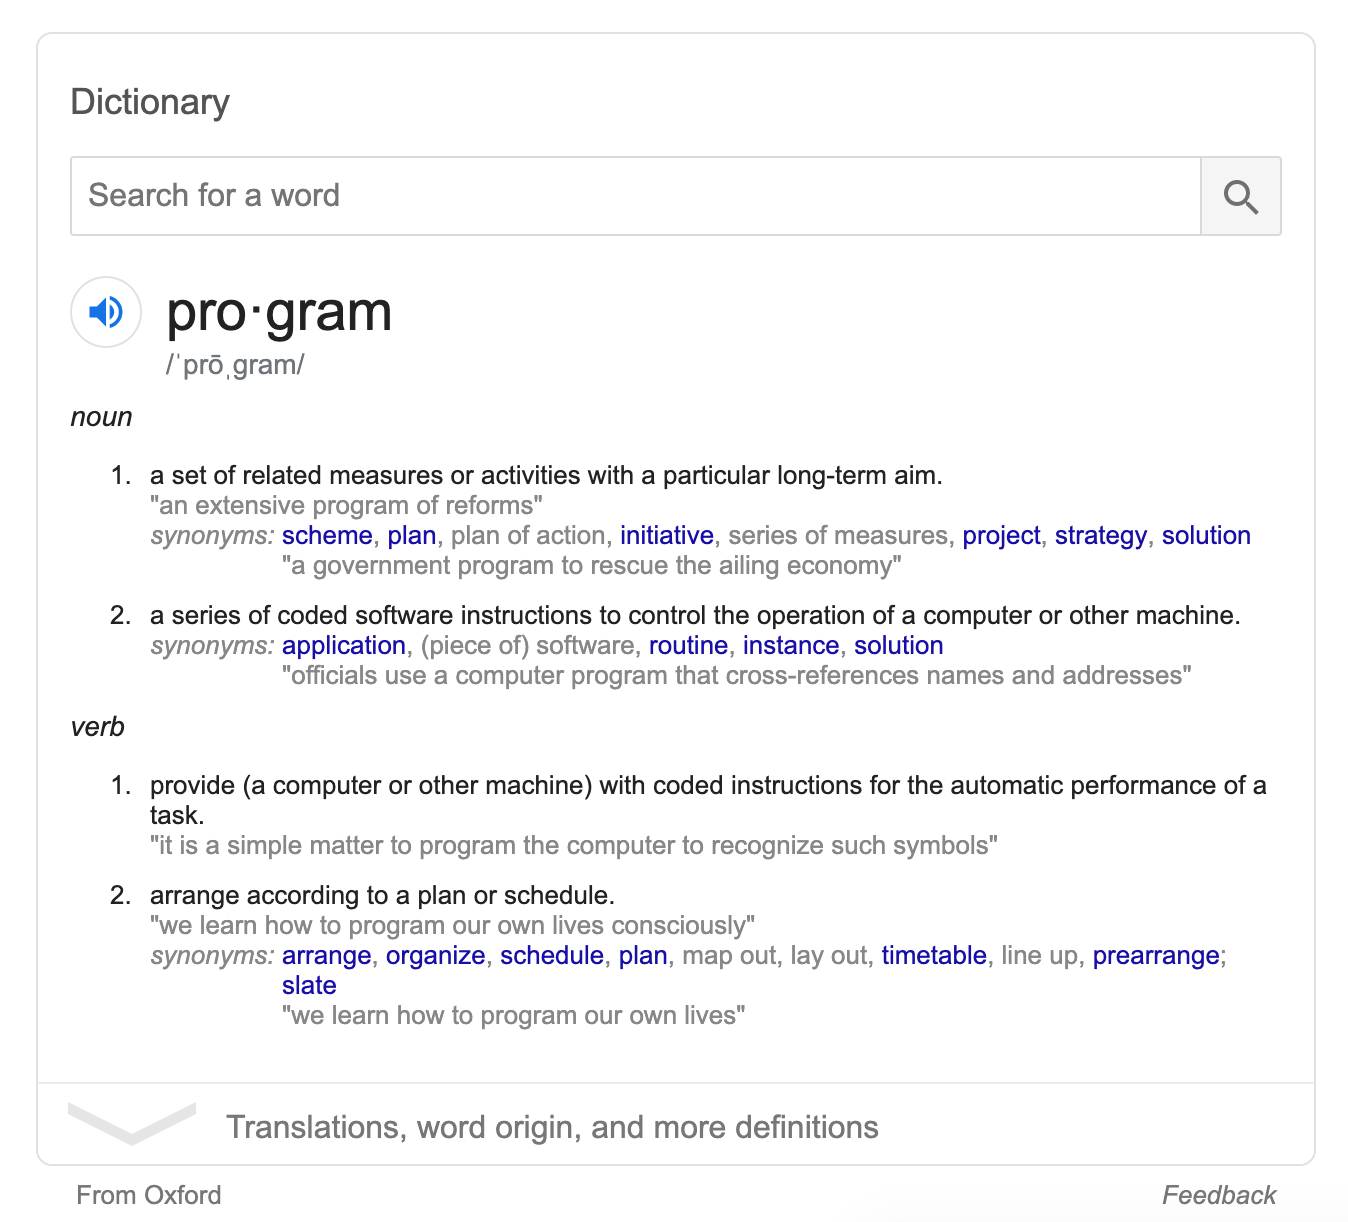 Start to Finish: Let's Build Google's Dictionary Widget